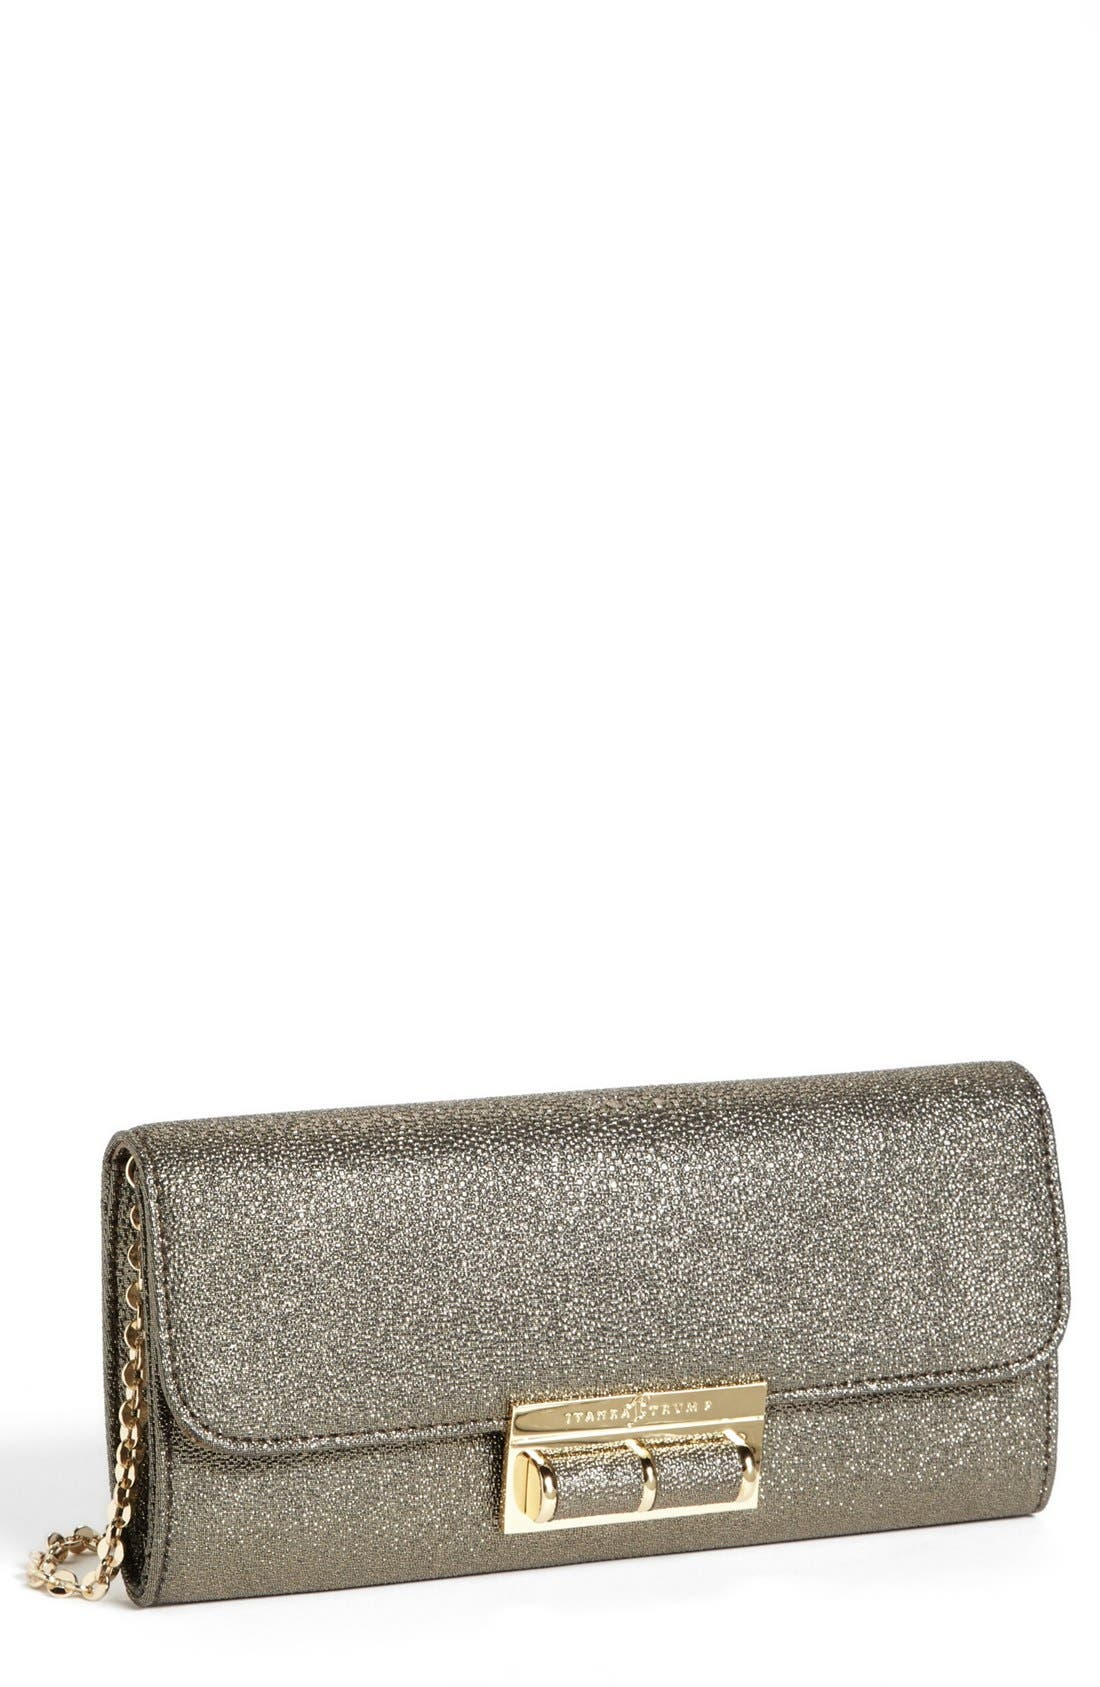 Alternate Image 1 Selected - Ivanka Trump Metallic Clutch